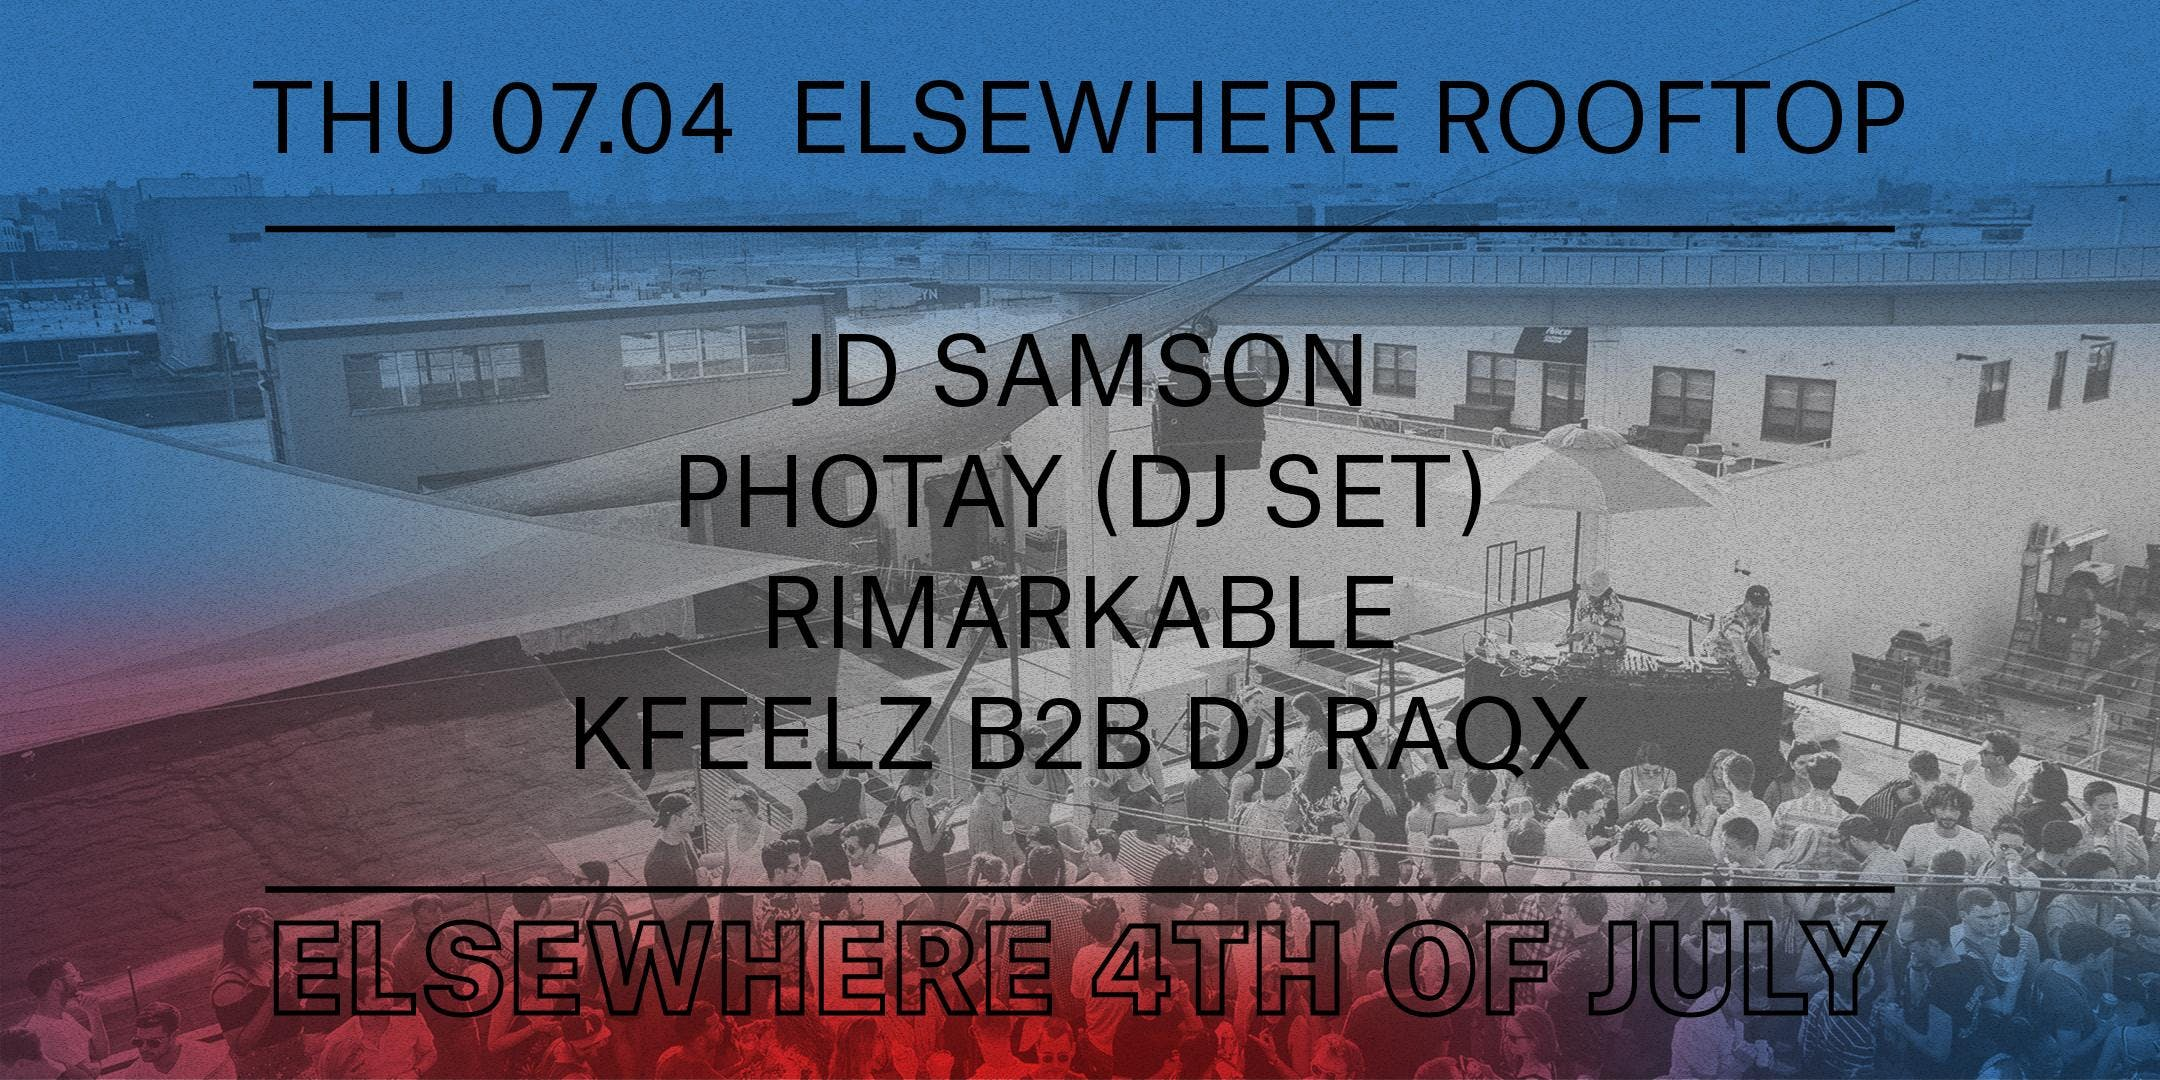 Elsewhere 4th of July w/ JD Samson, Photay (DJ Set), Rimarkable & Kfeelz B2B DJ Raqx